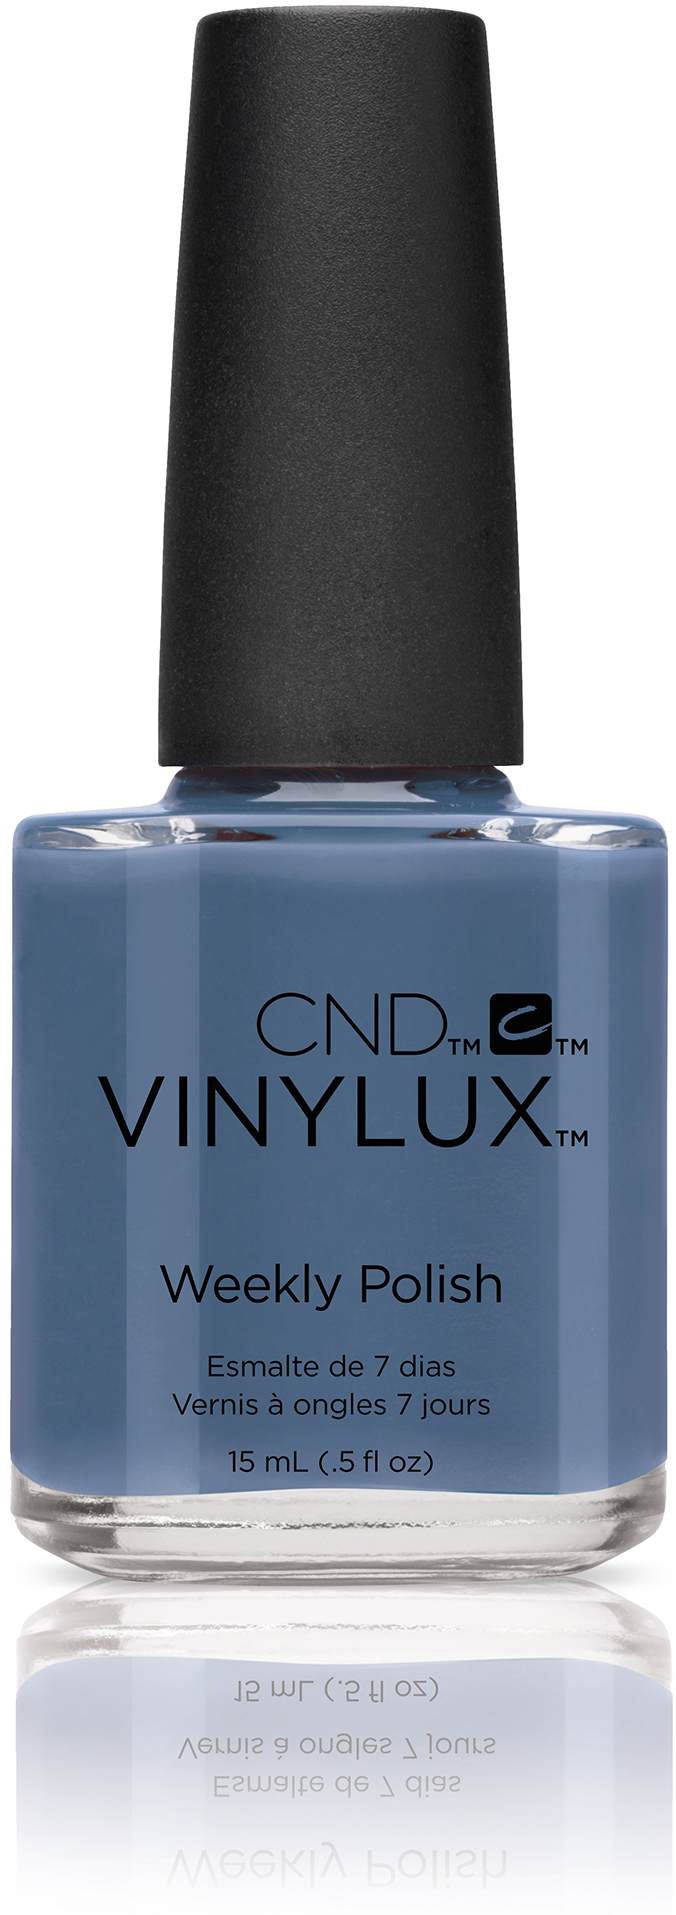 CND Vinylux Craft Culture Collection Denim Patch